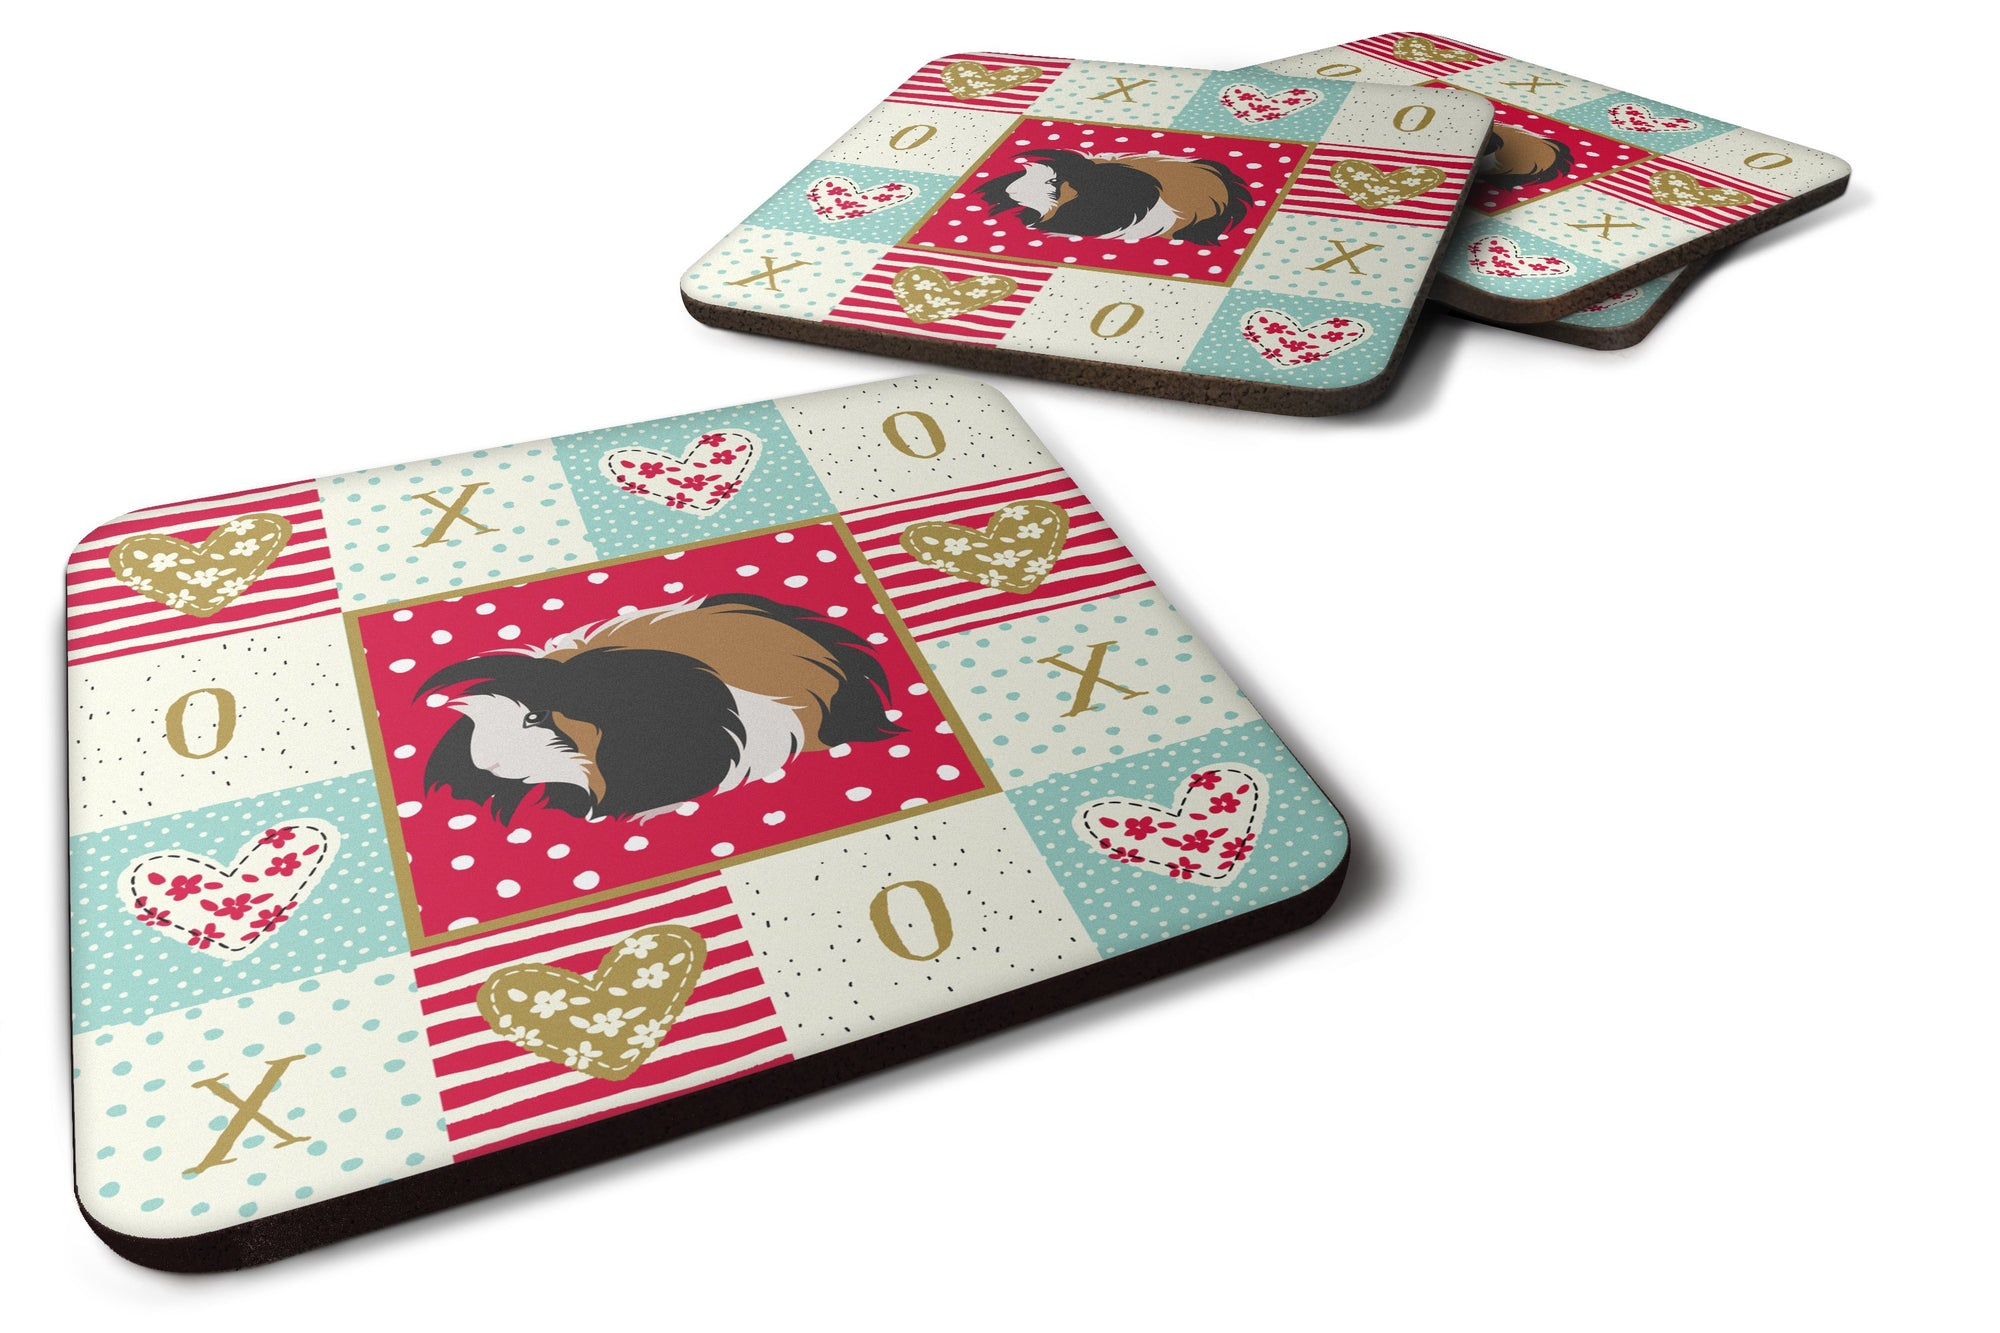 Set of 4 Sheba Guinea Pig Love Foam Coasters Set of 4 CK5433FC by Caroline's Treasures